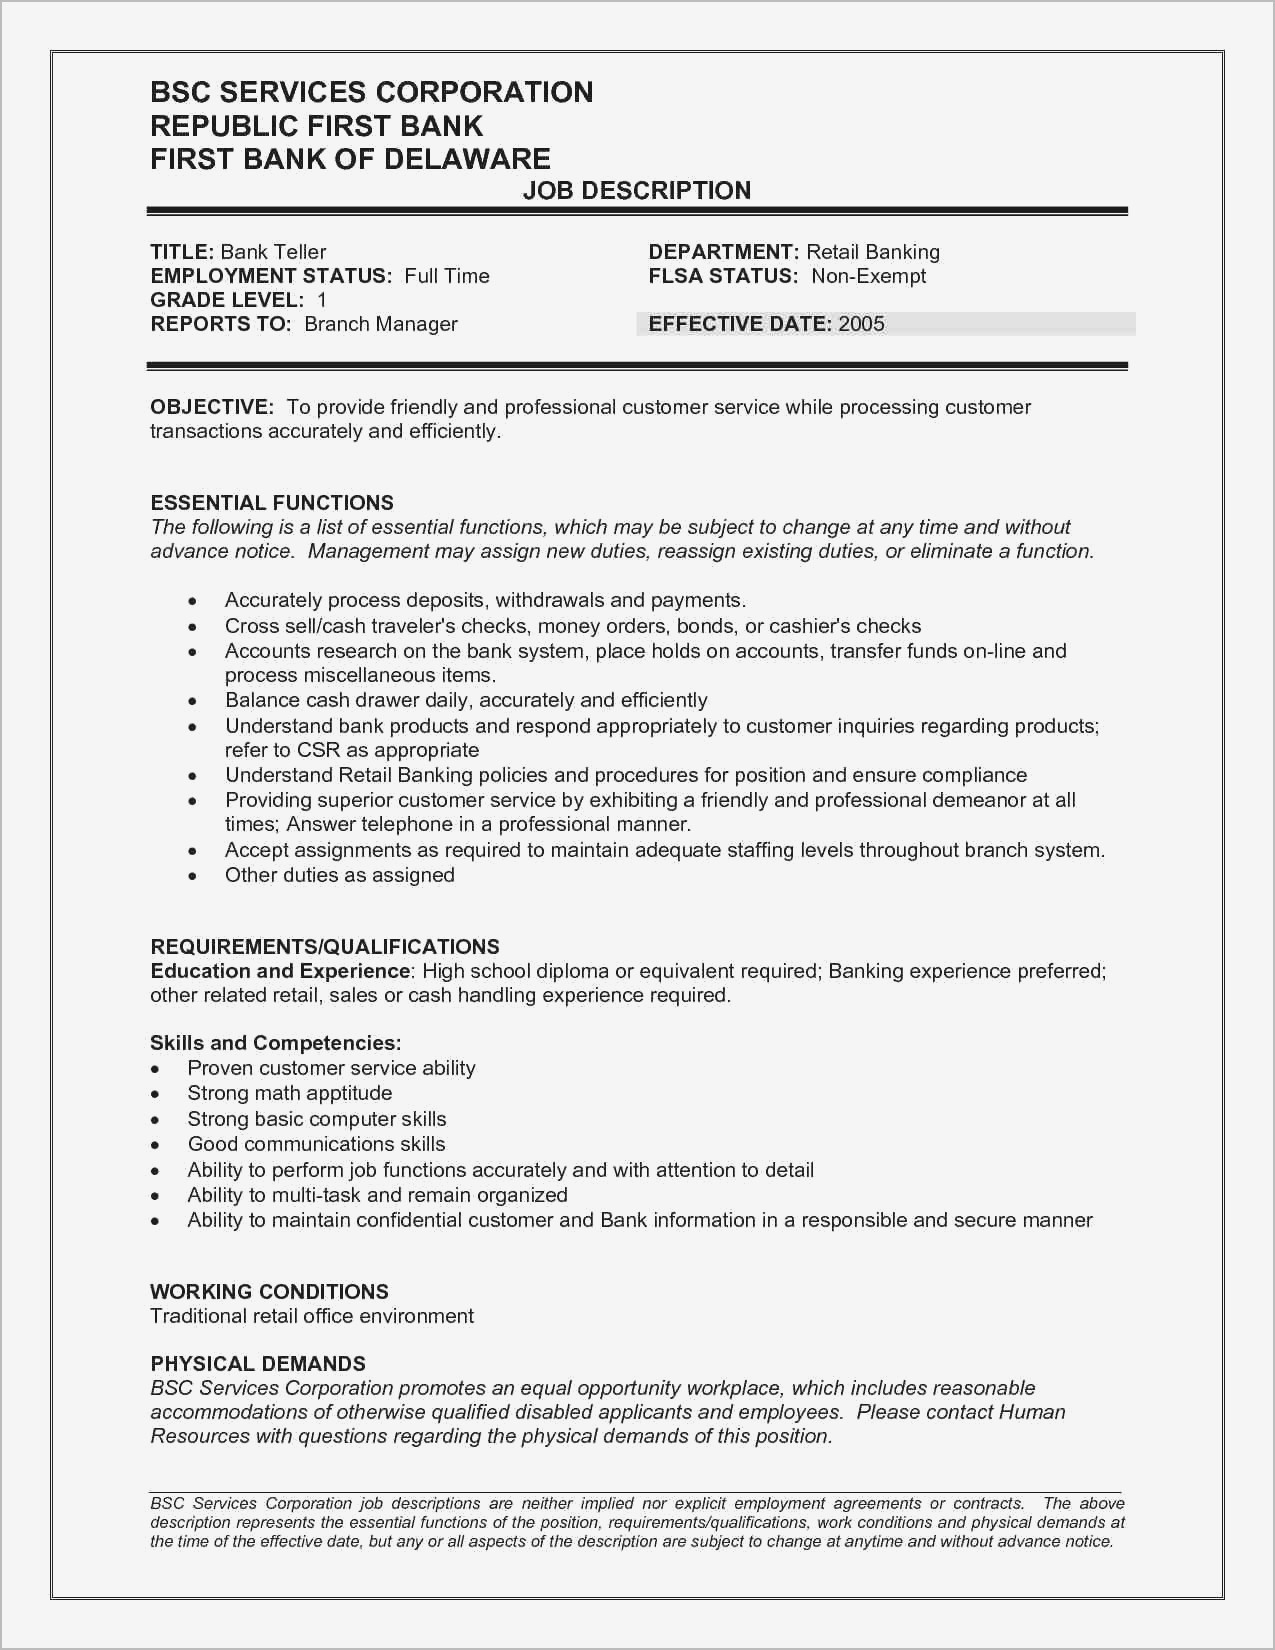 Manager Job Description for Resume - Basic Resume Examples for Retail Jobs Resume Resume Examples